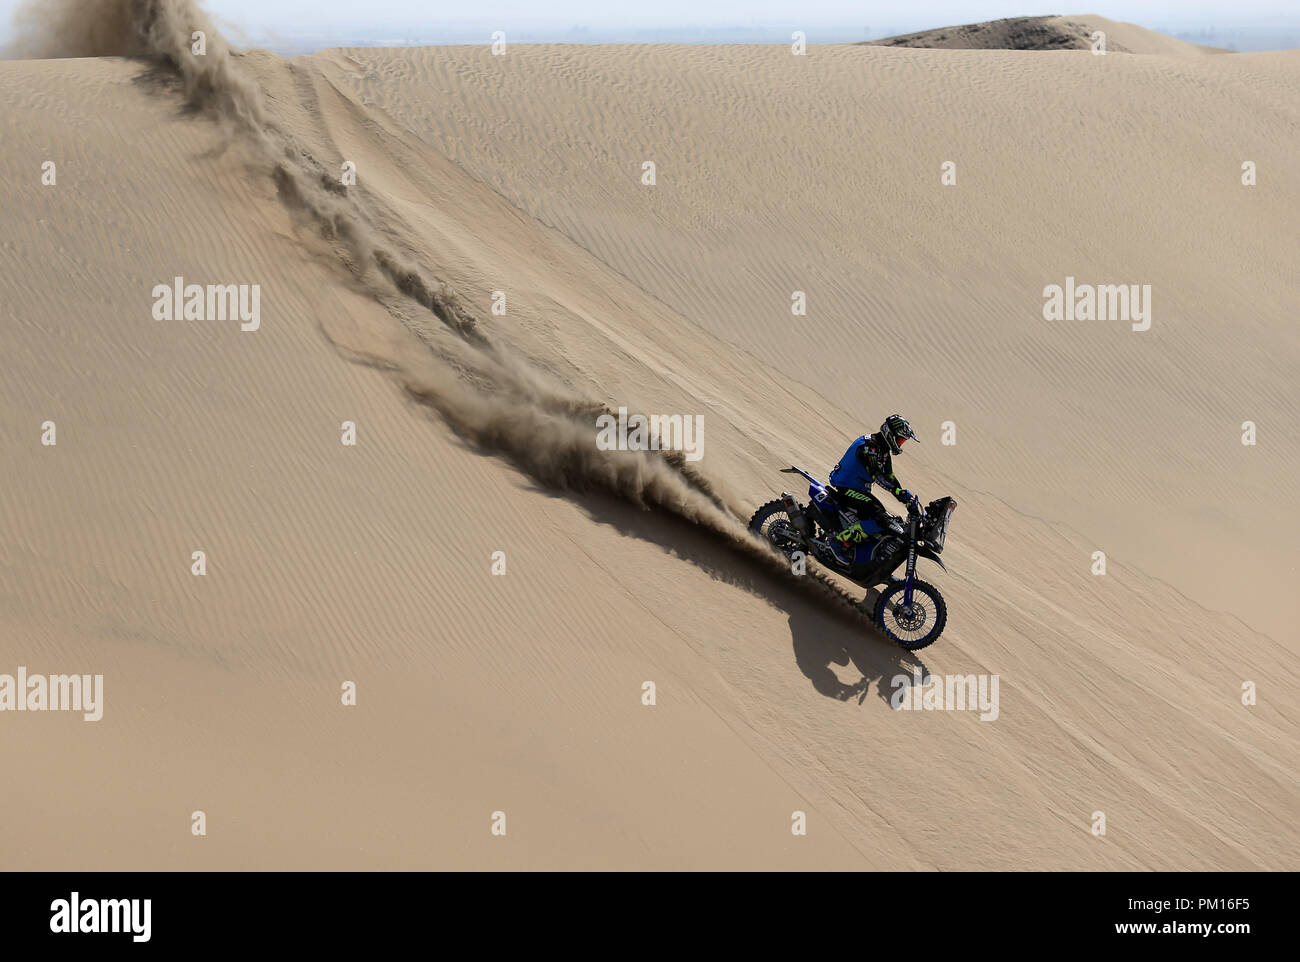 Ica, Peru. 16th Sep, 2018. French Adrien Van Beveren rides his Yamaha bike during the third stage of the Inca Challenge, at the desert in Ica, Peru, 16 September 2018. EFE/Ernesto Arias Credit: EFE News Agency/Alamy Live News - Stock Image